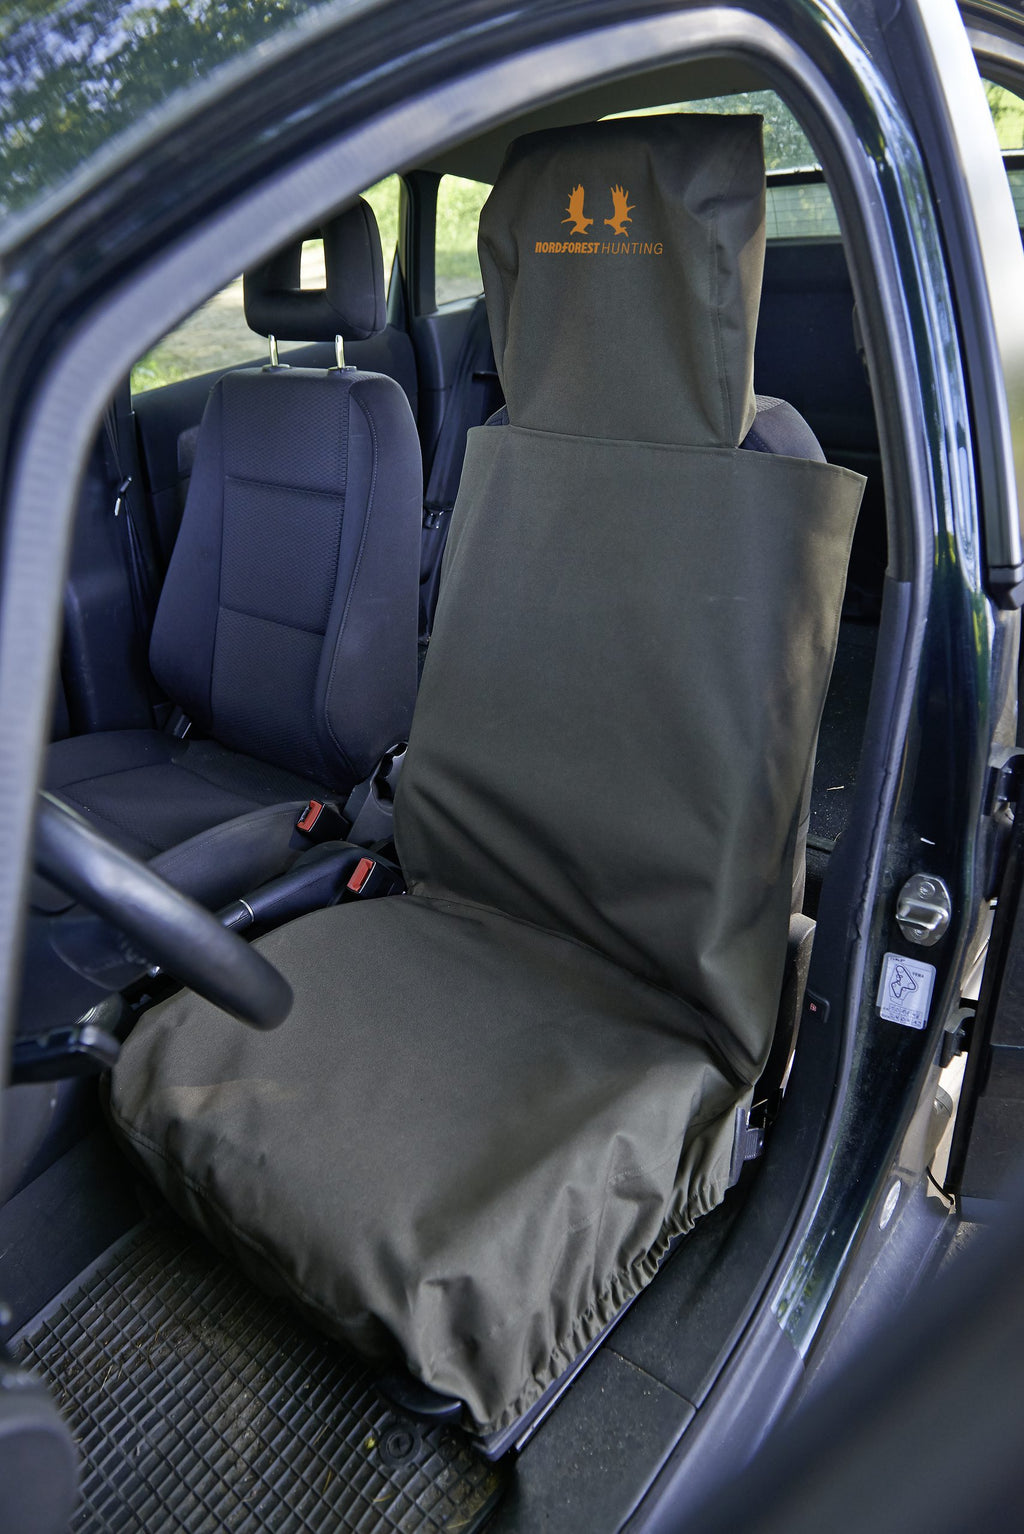 Carseat cover